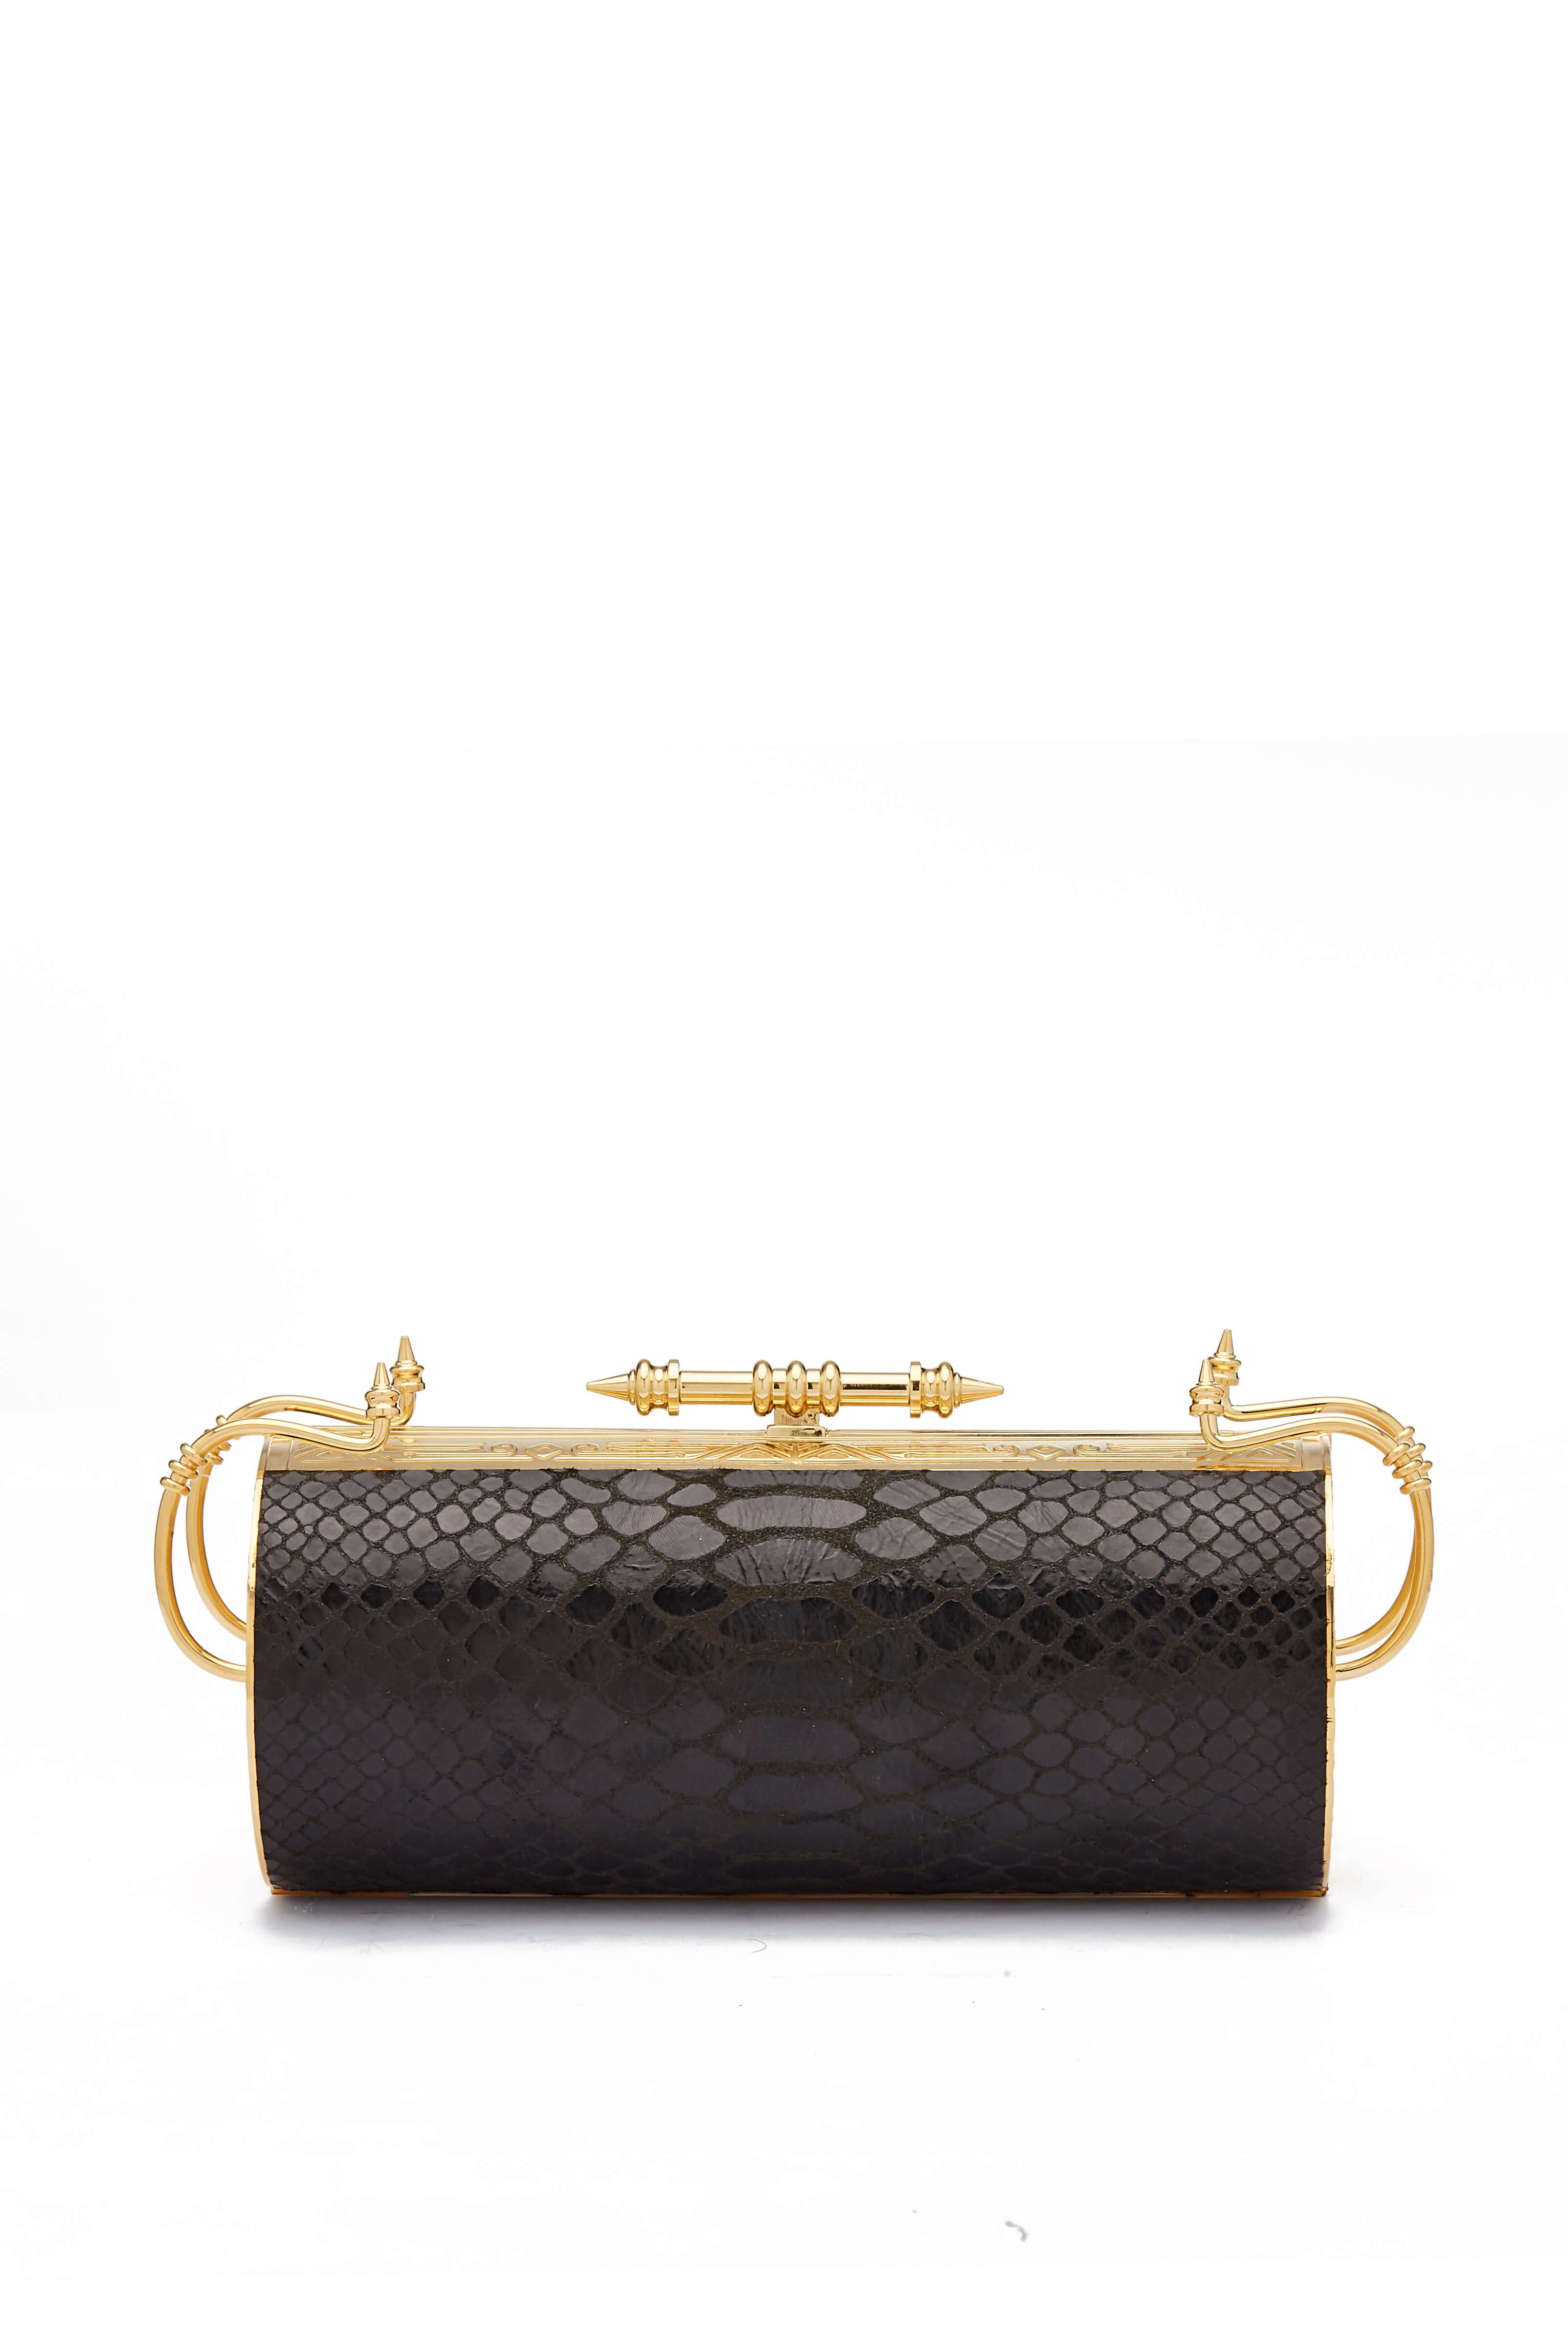 Felucca Python Black Clutch new